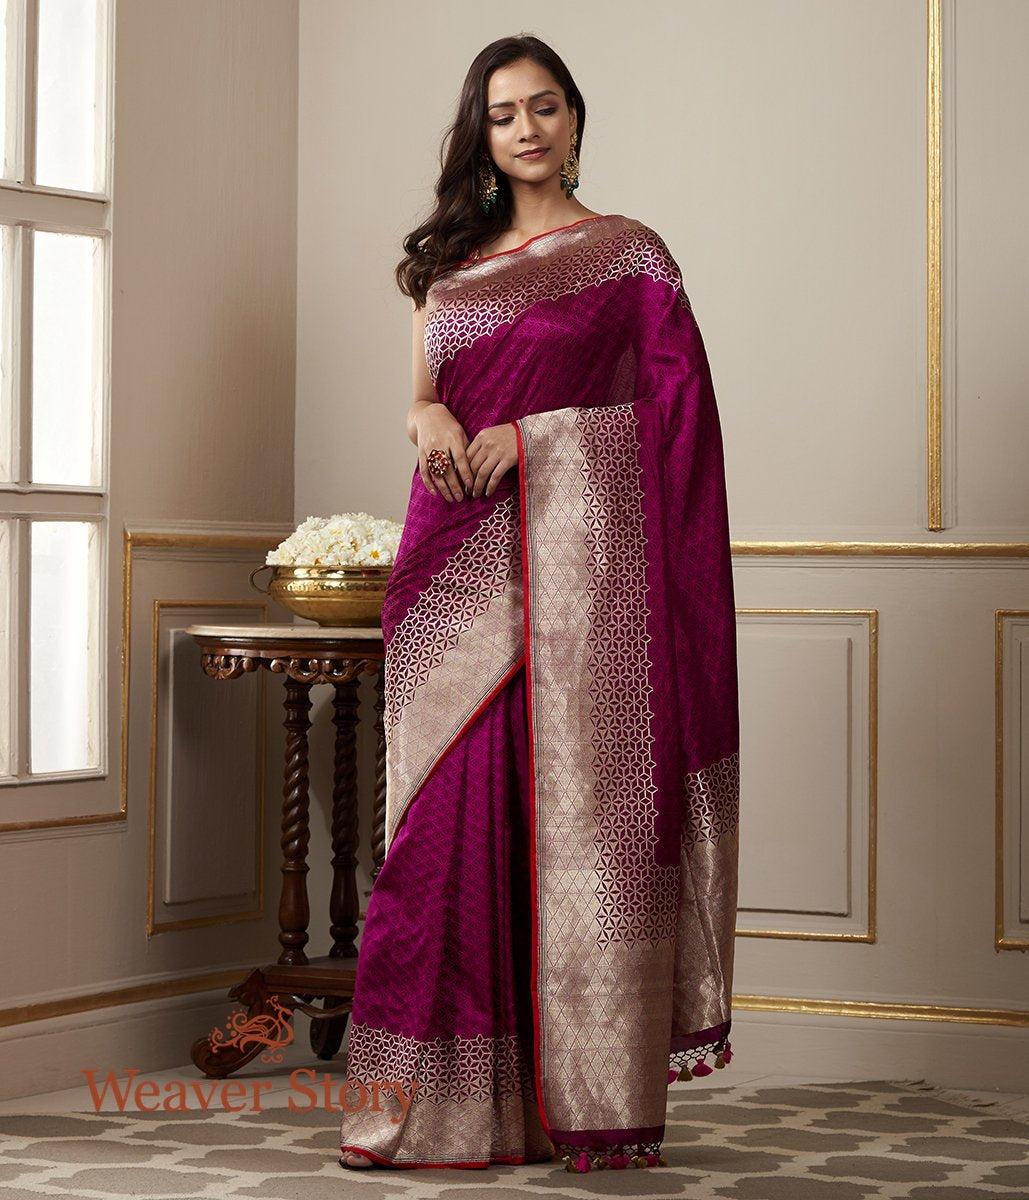 Handwoven Purple and Pink Dual Tone Tanchoi Saree with Woven Geometric Patterns